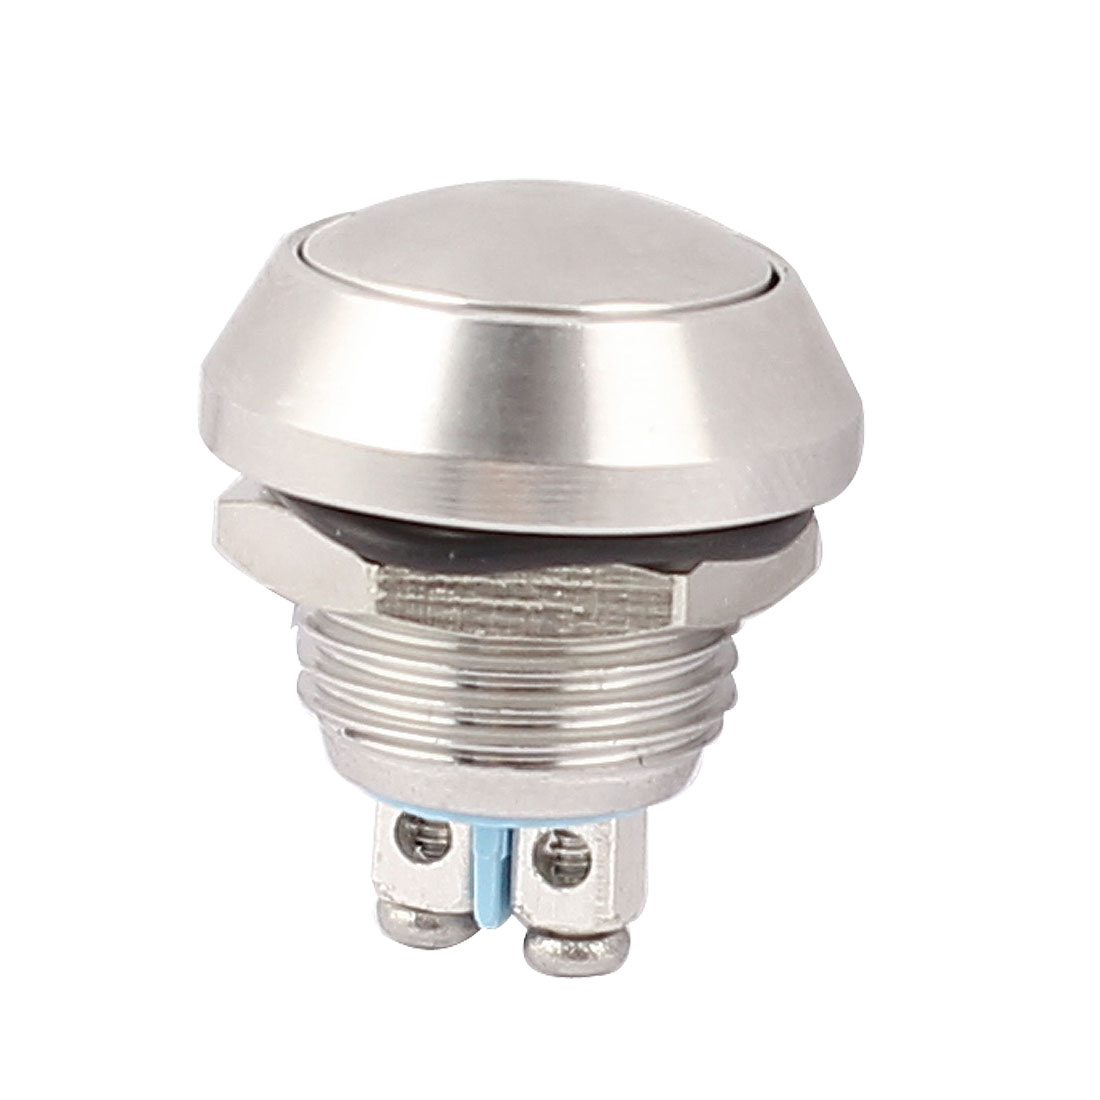 12mm Mounted Thread SPST Ball Head Momentary Push Button Switch